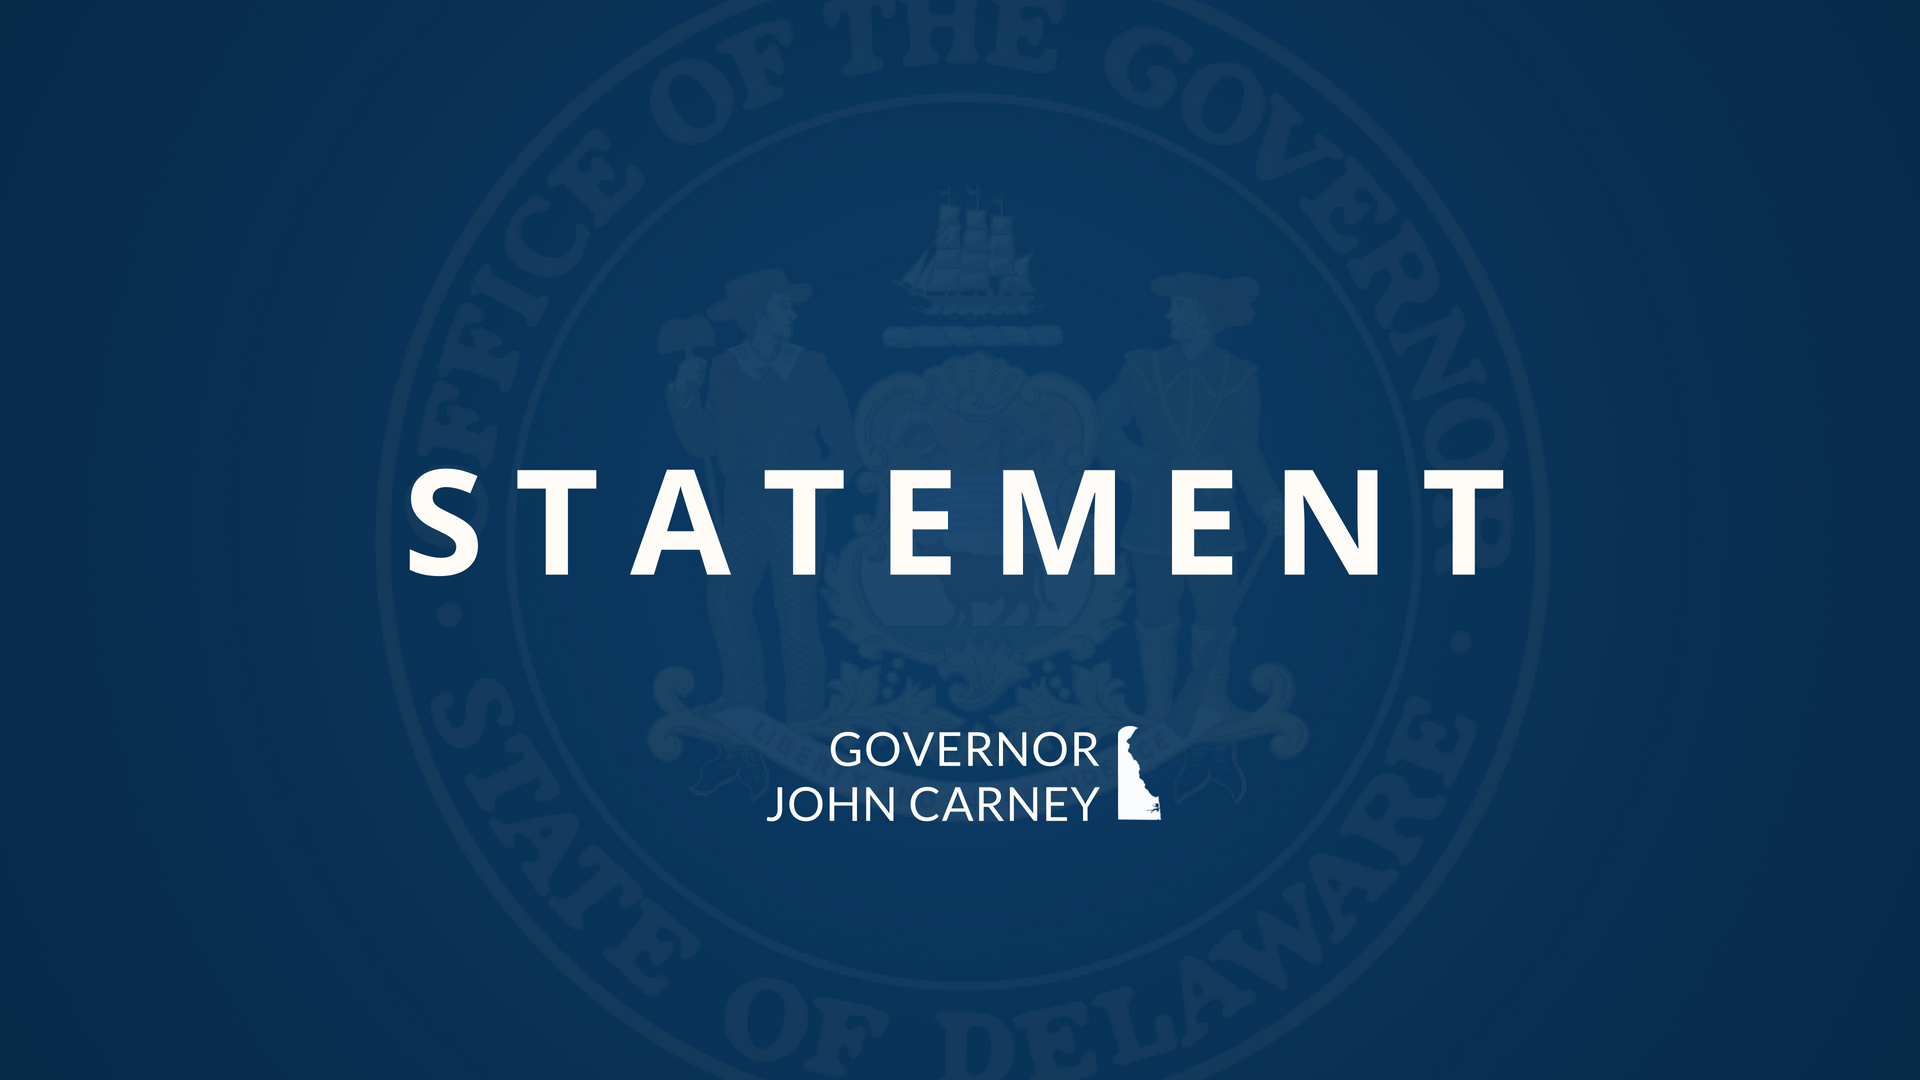 Governor Carney Statement